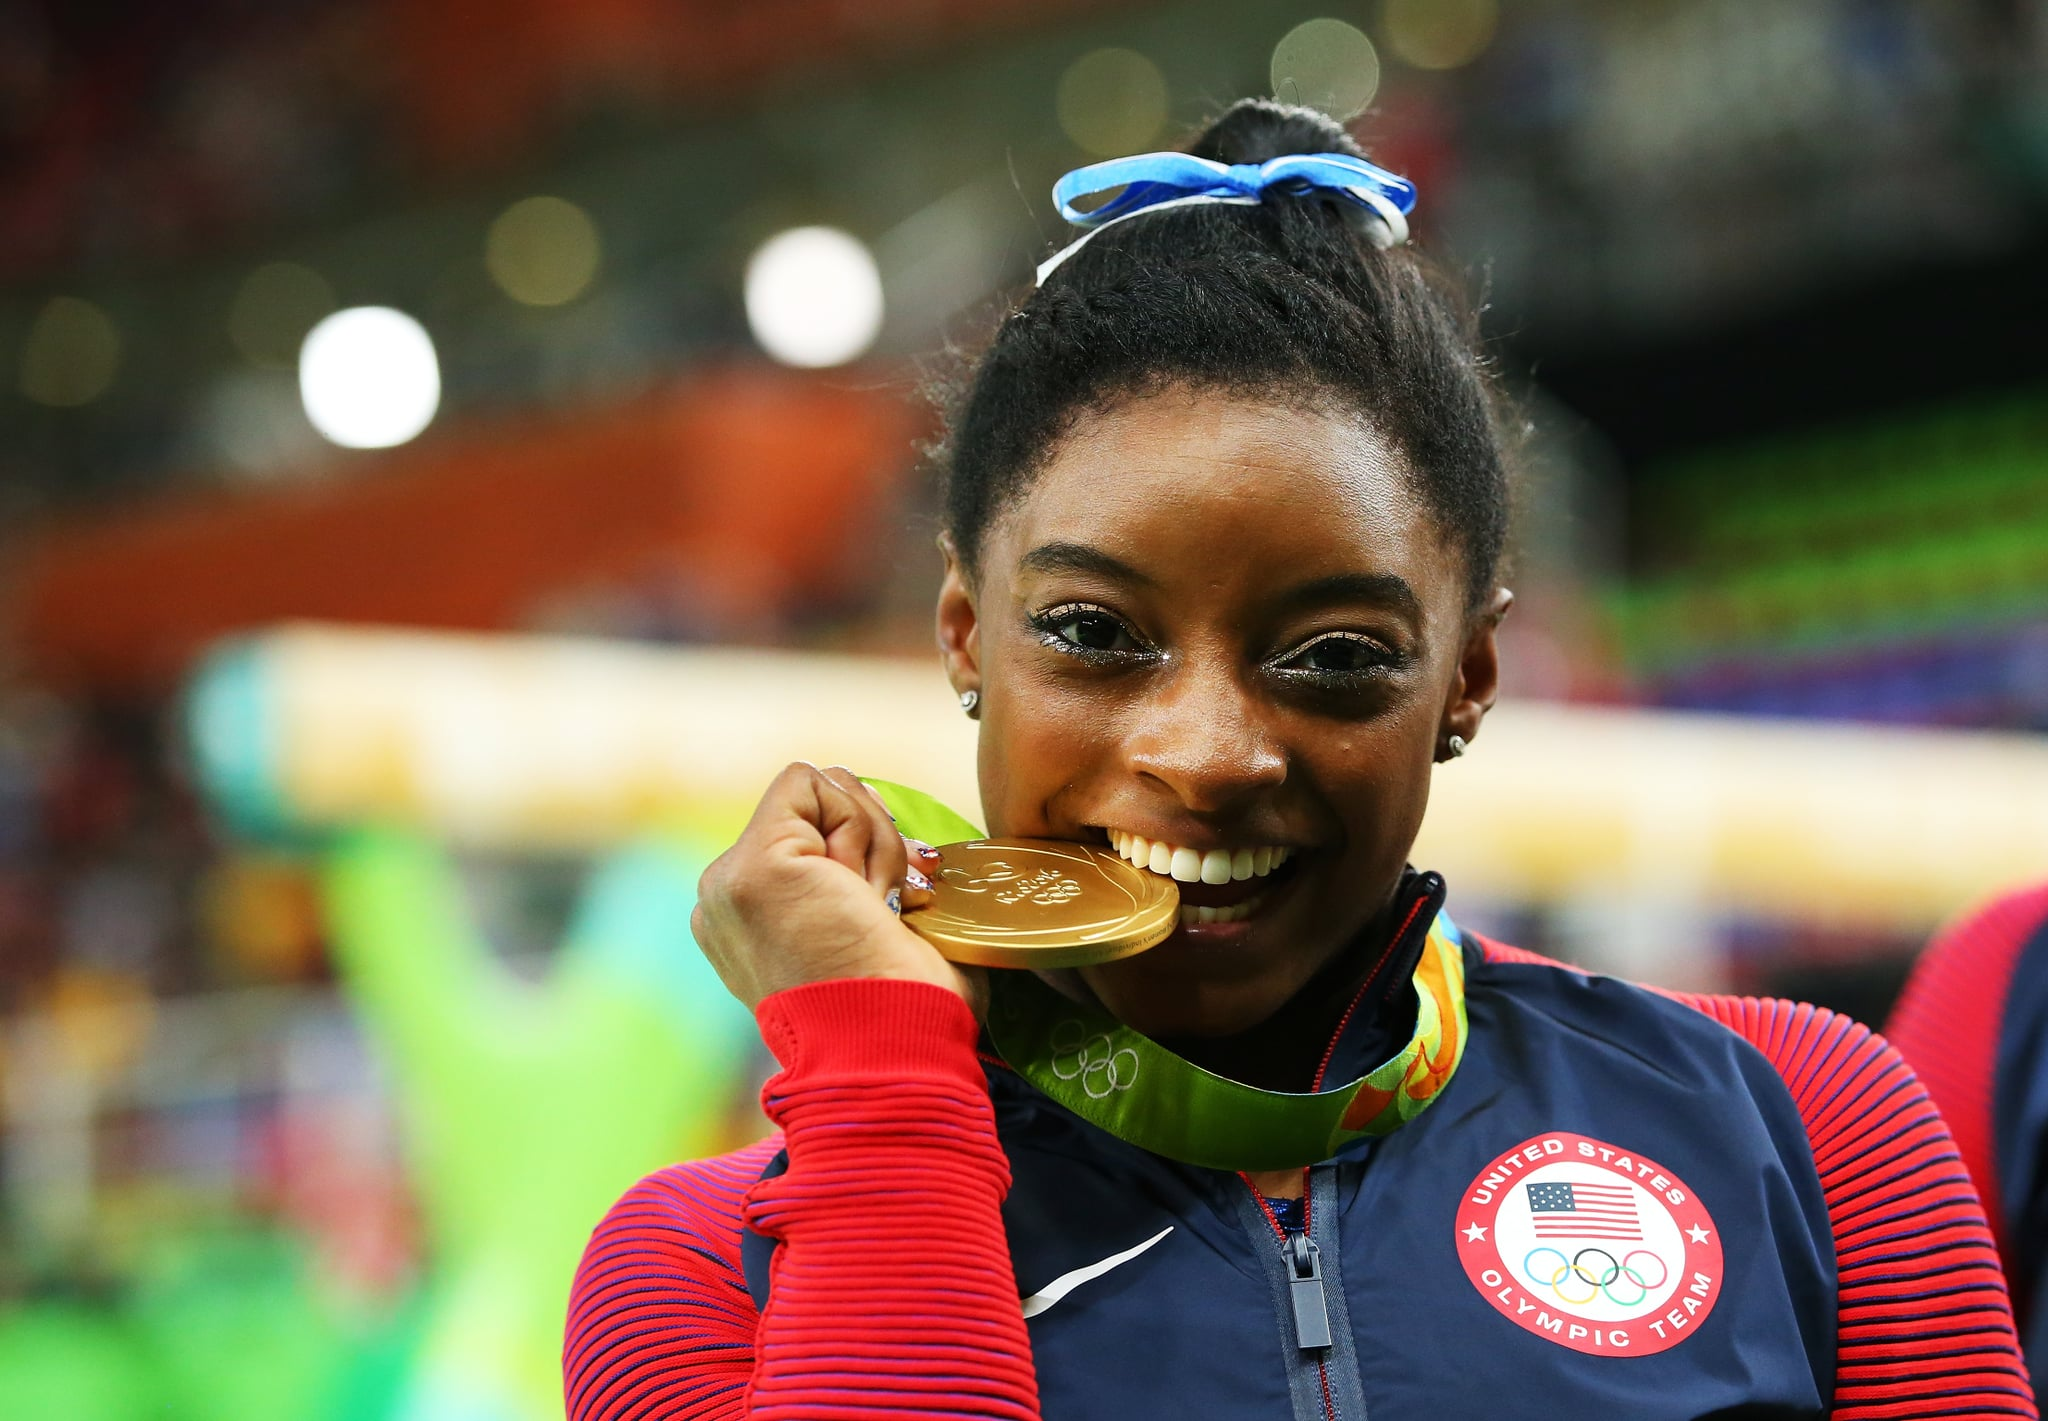 Simone Biles Proves She's a Legend, Shuts Down Sexism With 1 Badass Quote